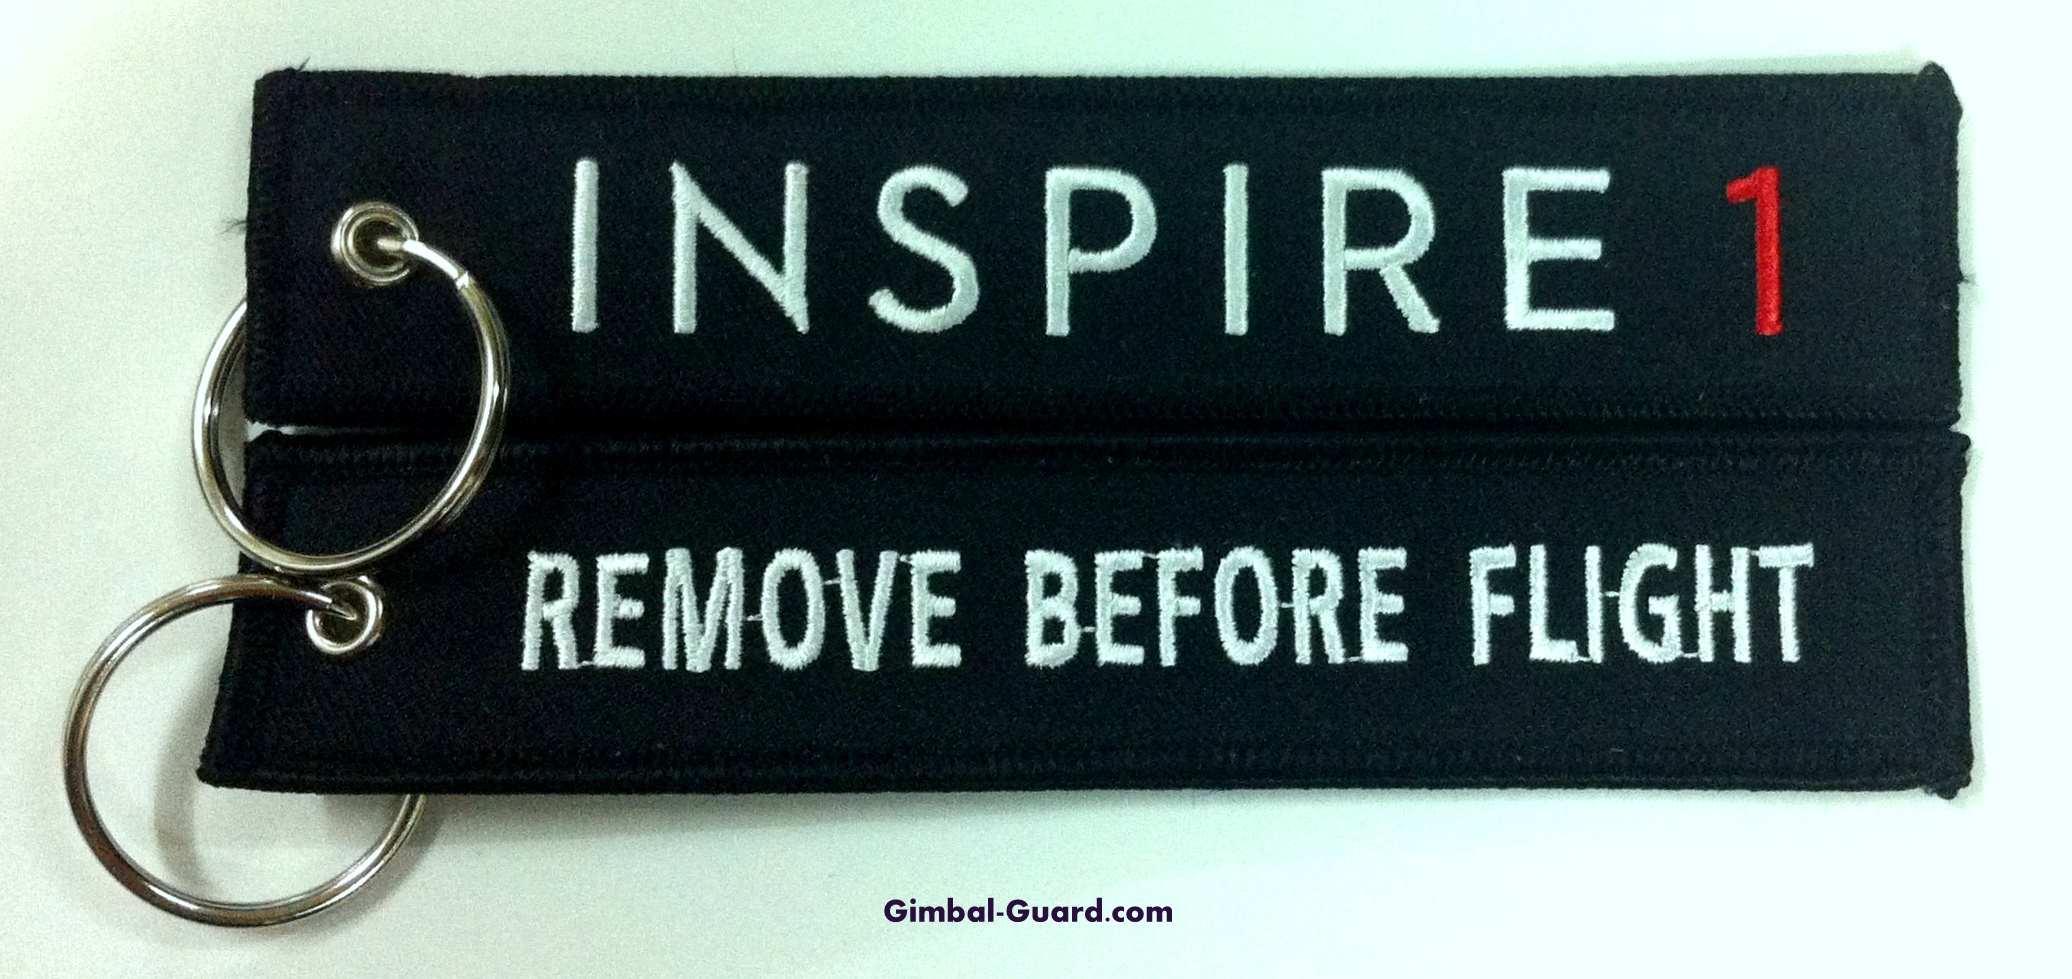 INSPIRE 1 Remove before flight